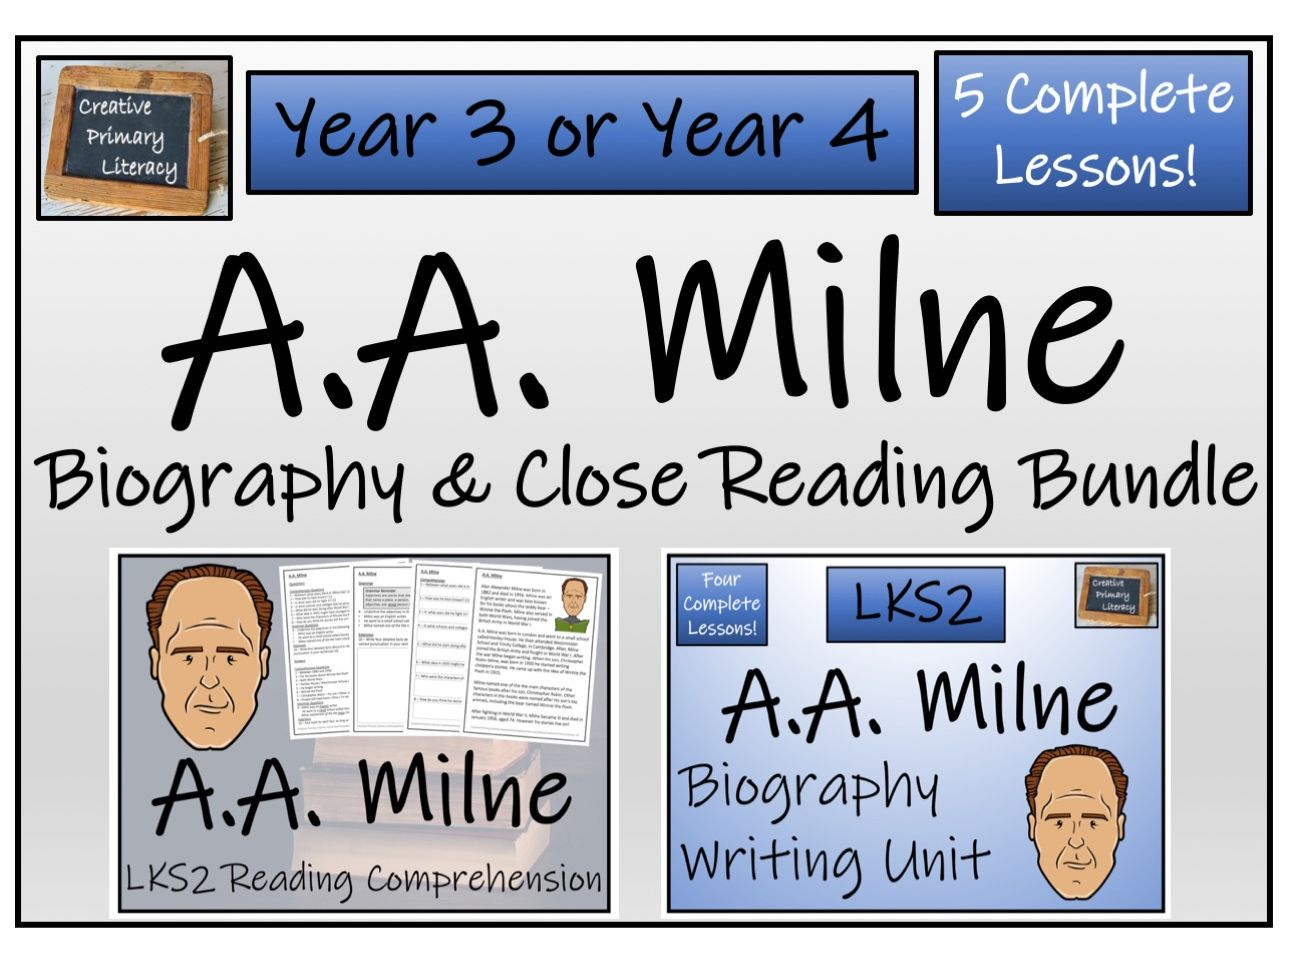 LKS2 Literacy - A.A. Milne Reading Comprehension & Biography Bundle